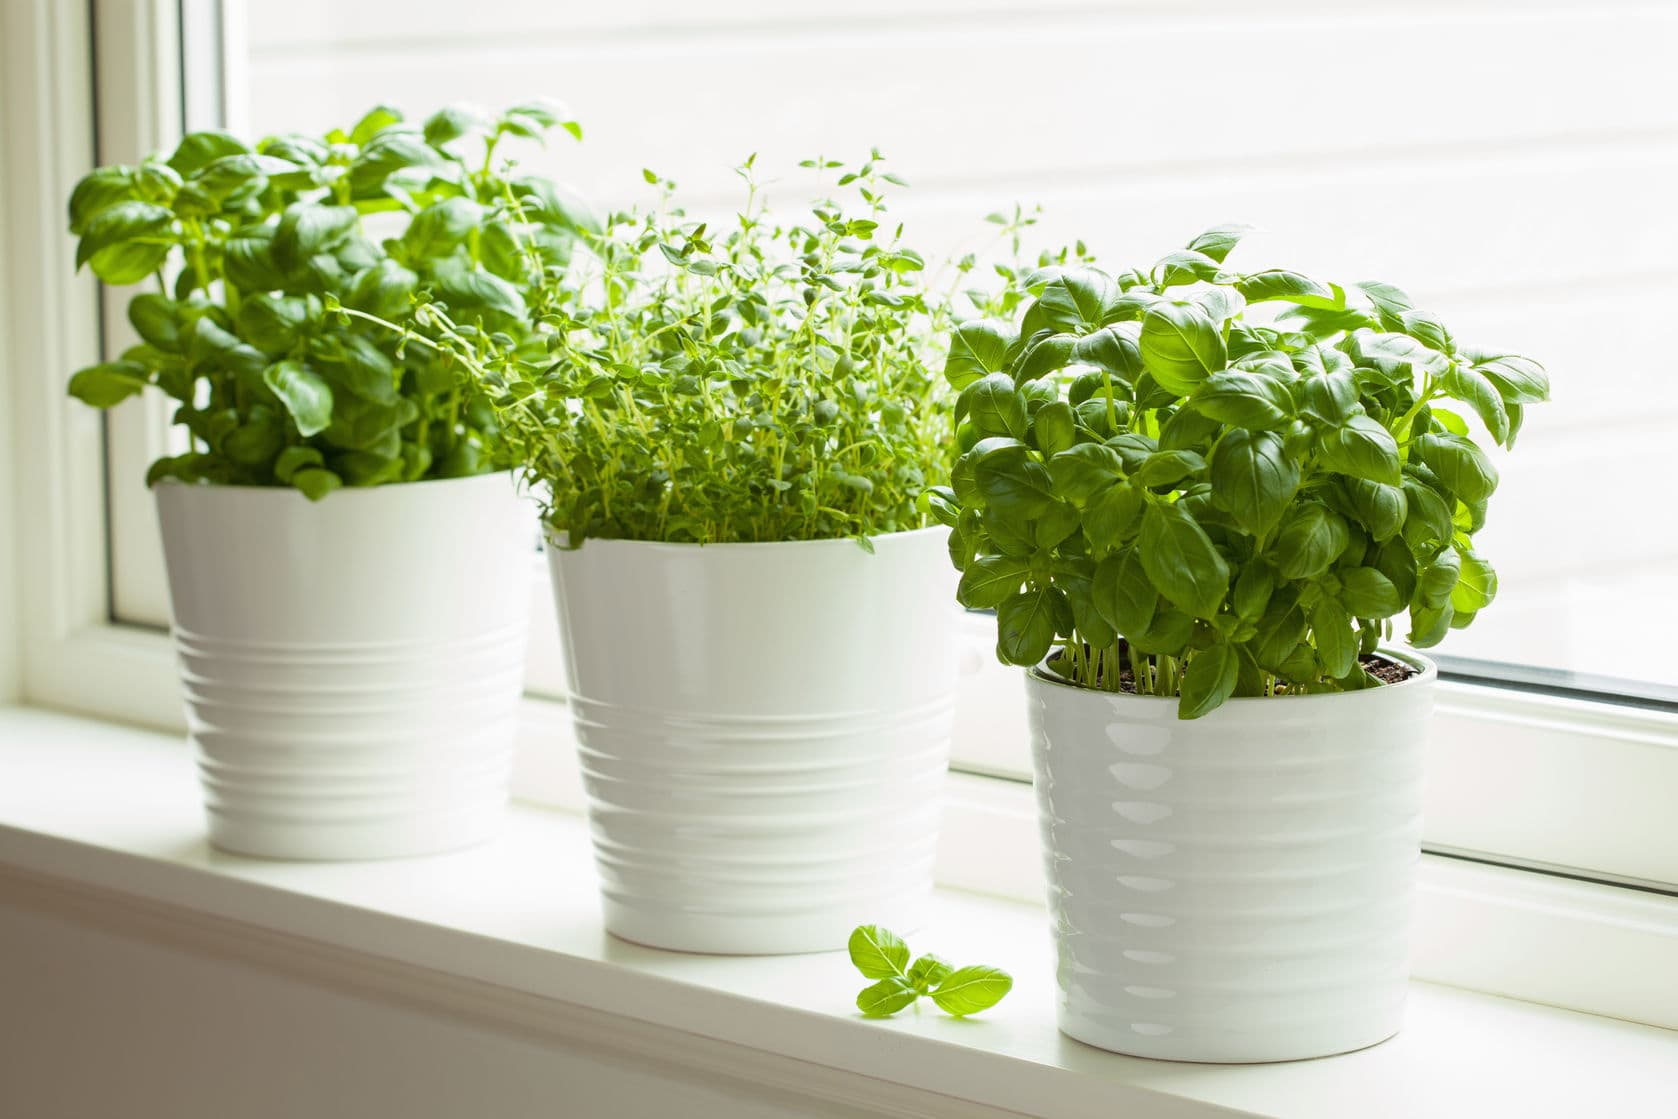 Indoor Window Sill Potted Basil and Thyme Herbs - Fesh Basil and Thyme Herbs Planted in Indoor Pots on Window Sill   https://physiologicnyc.com/integrative-medicine-wellness/